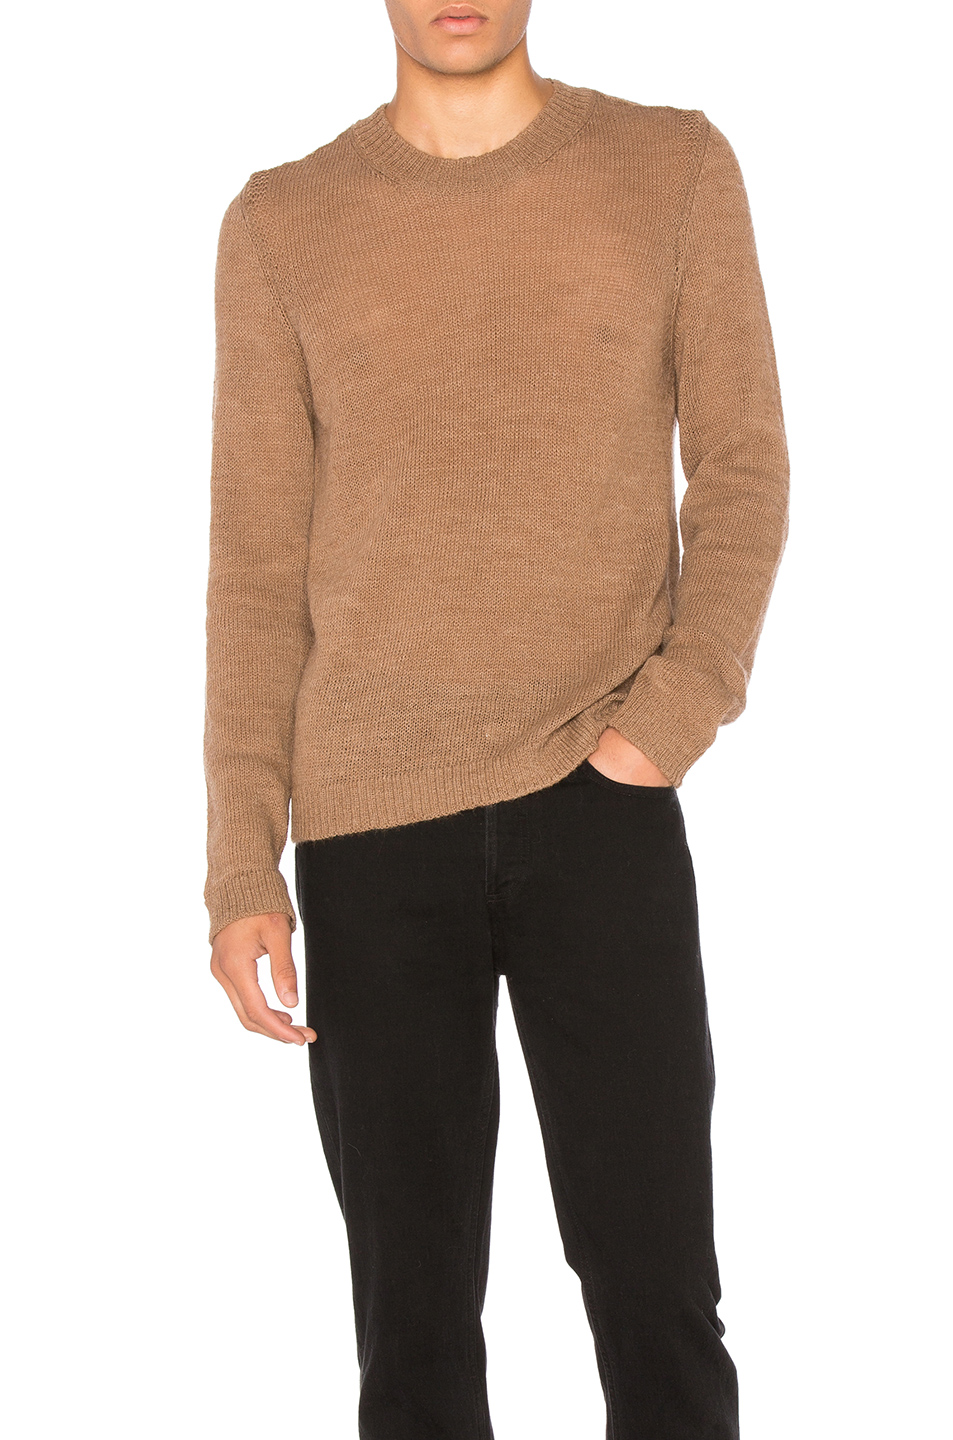 Maison Margiela Jersey Pullover Sweater in Brown